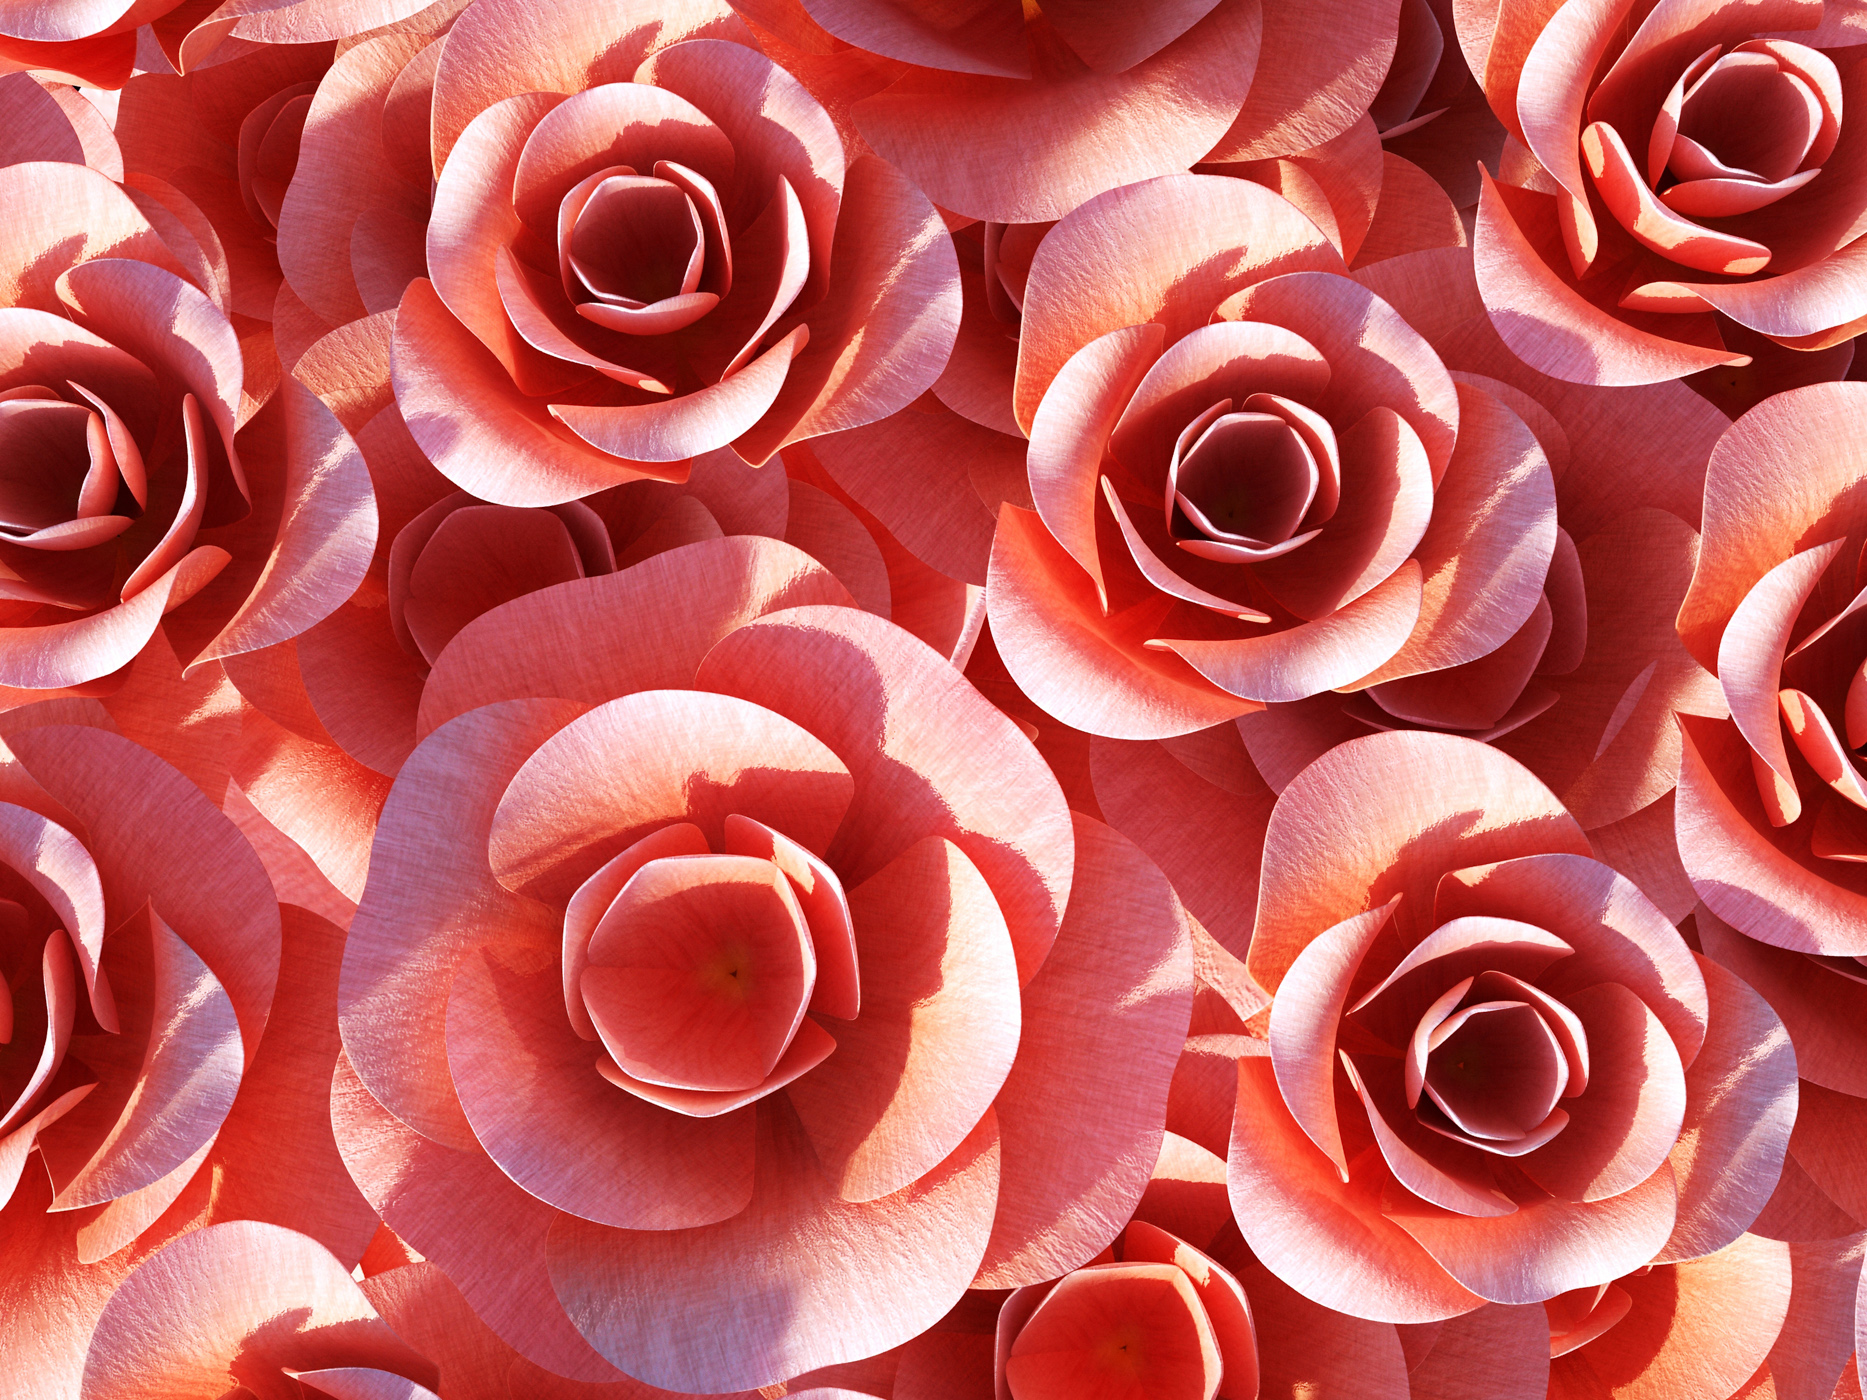 Roses background shows valentines petals and valentine photo